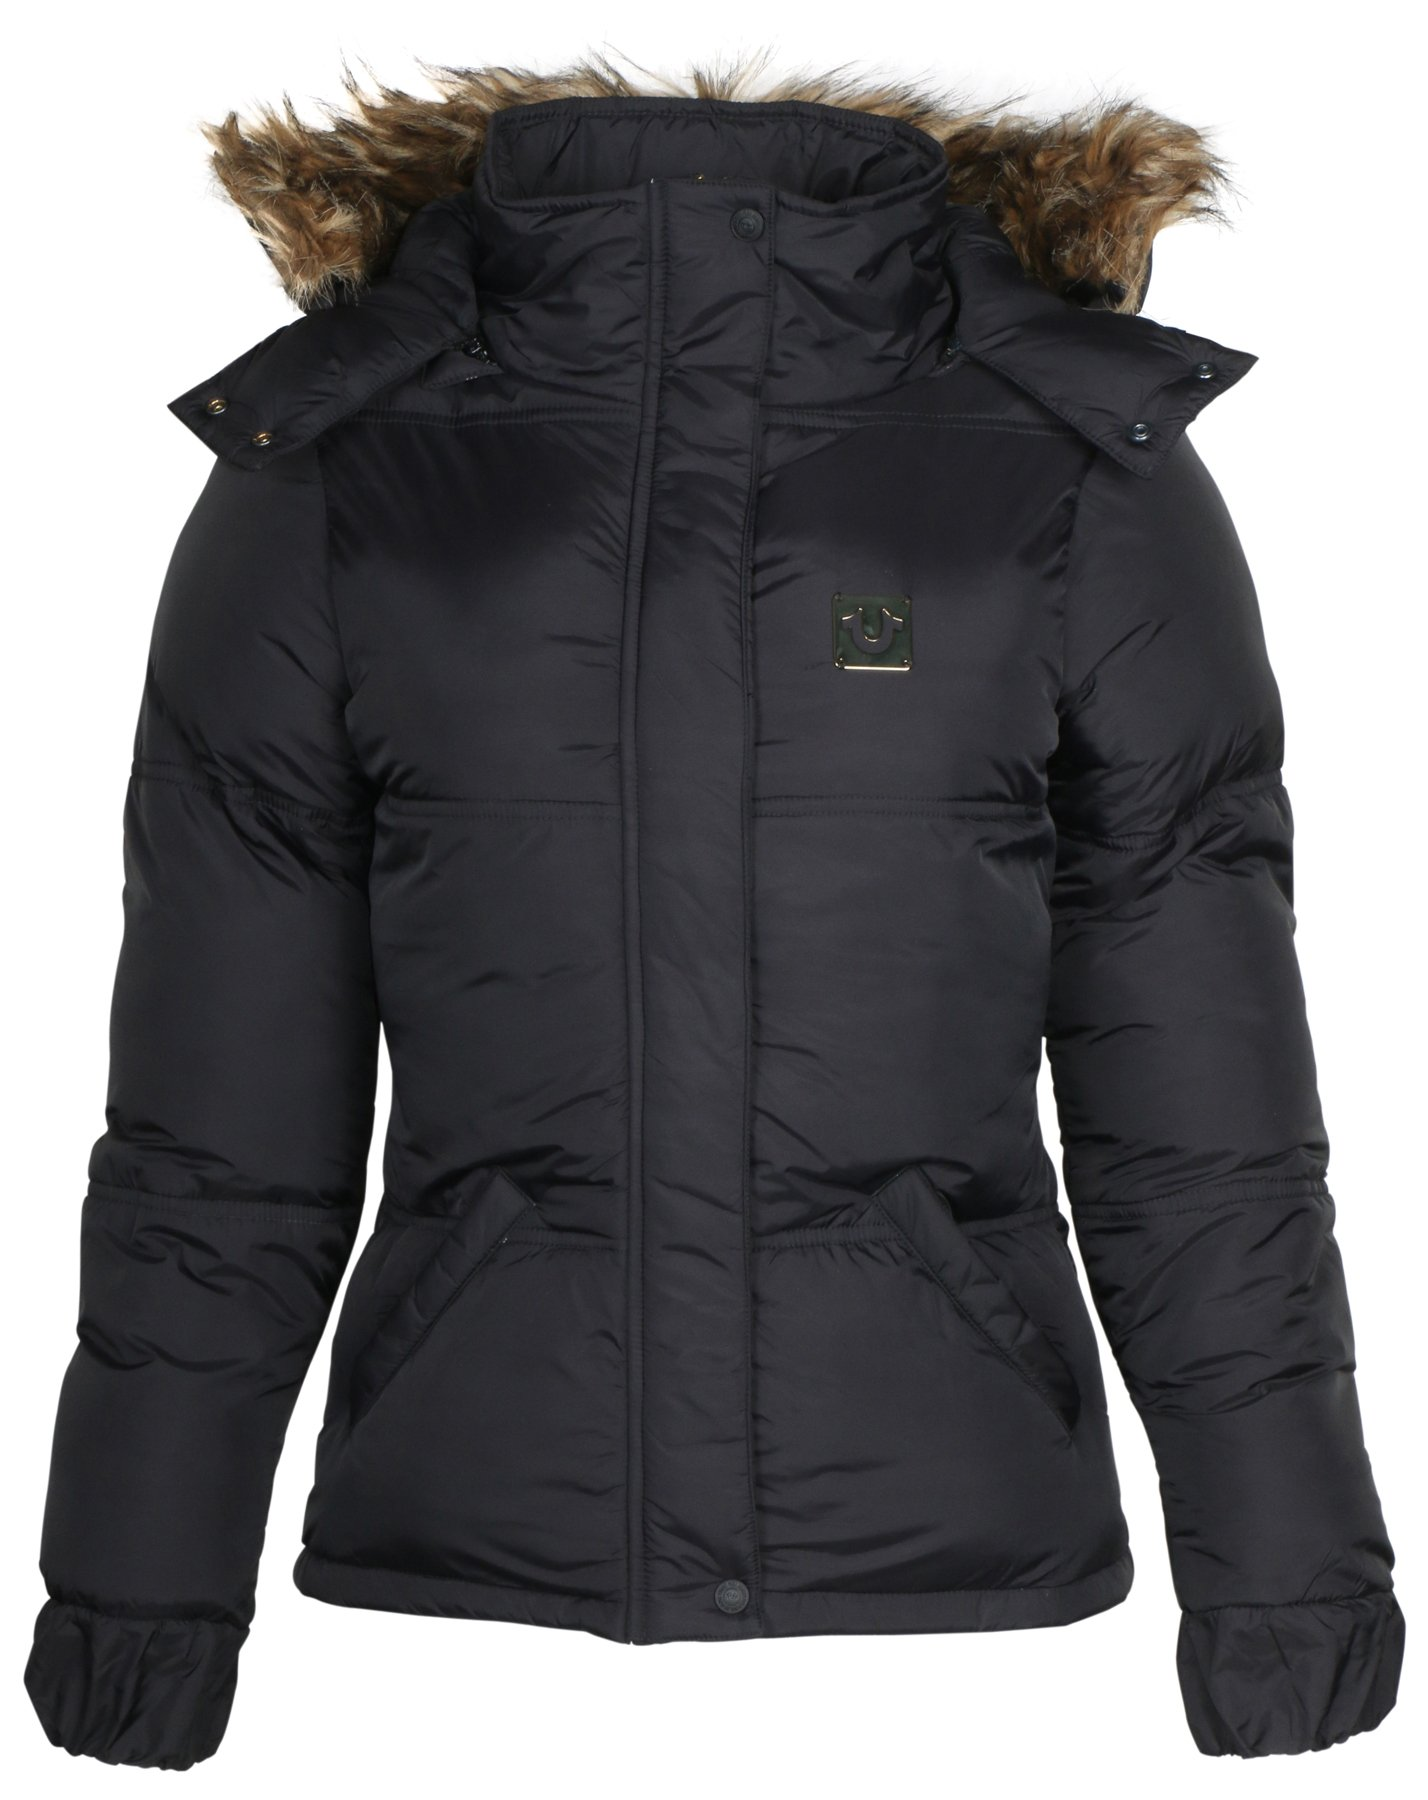 True Religion Women's Quilted Puffer Jacket with Hood-Black-XL